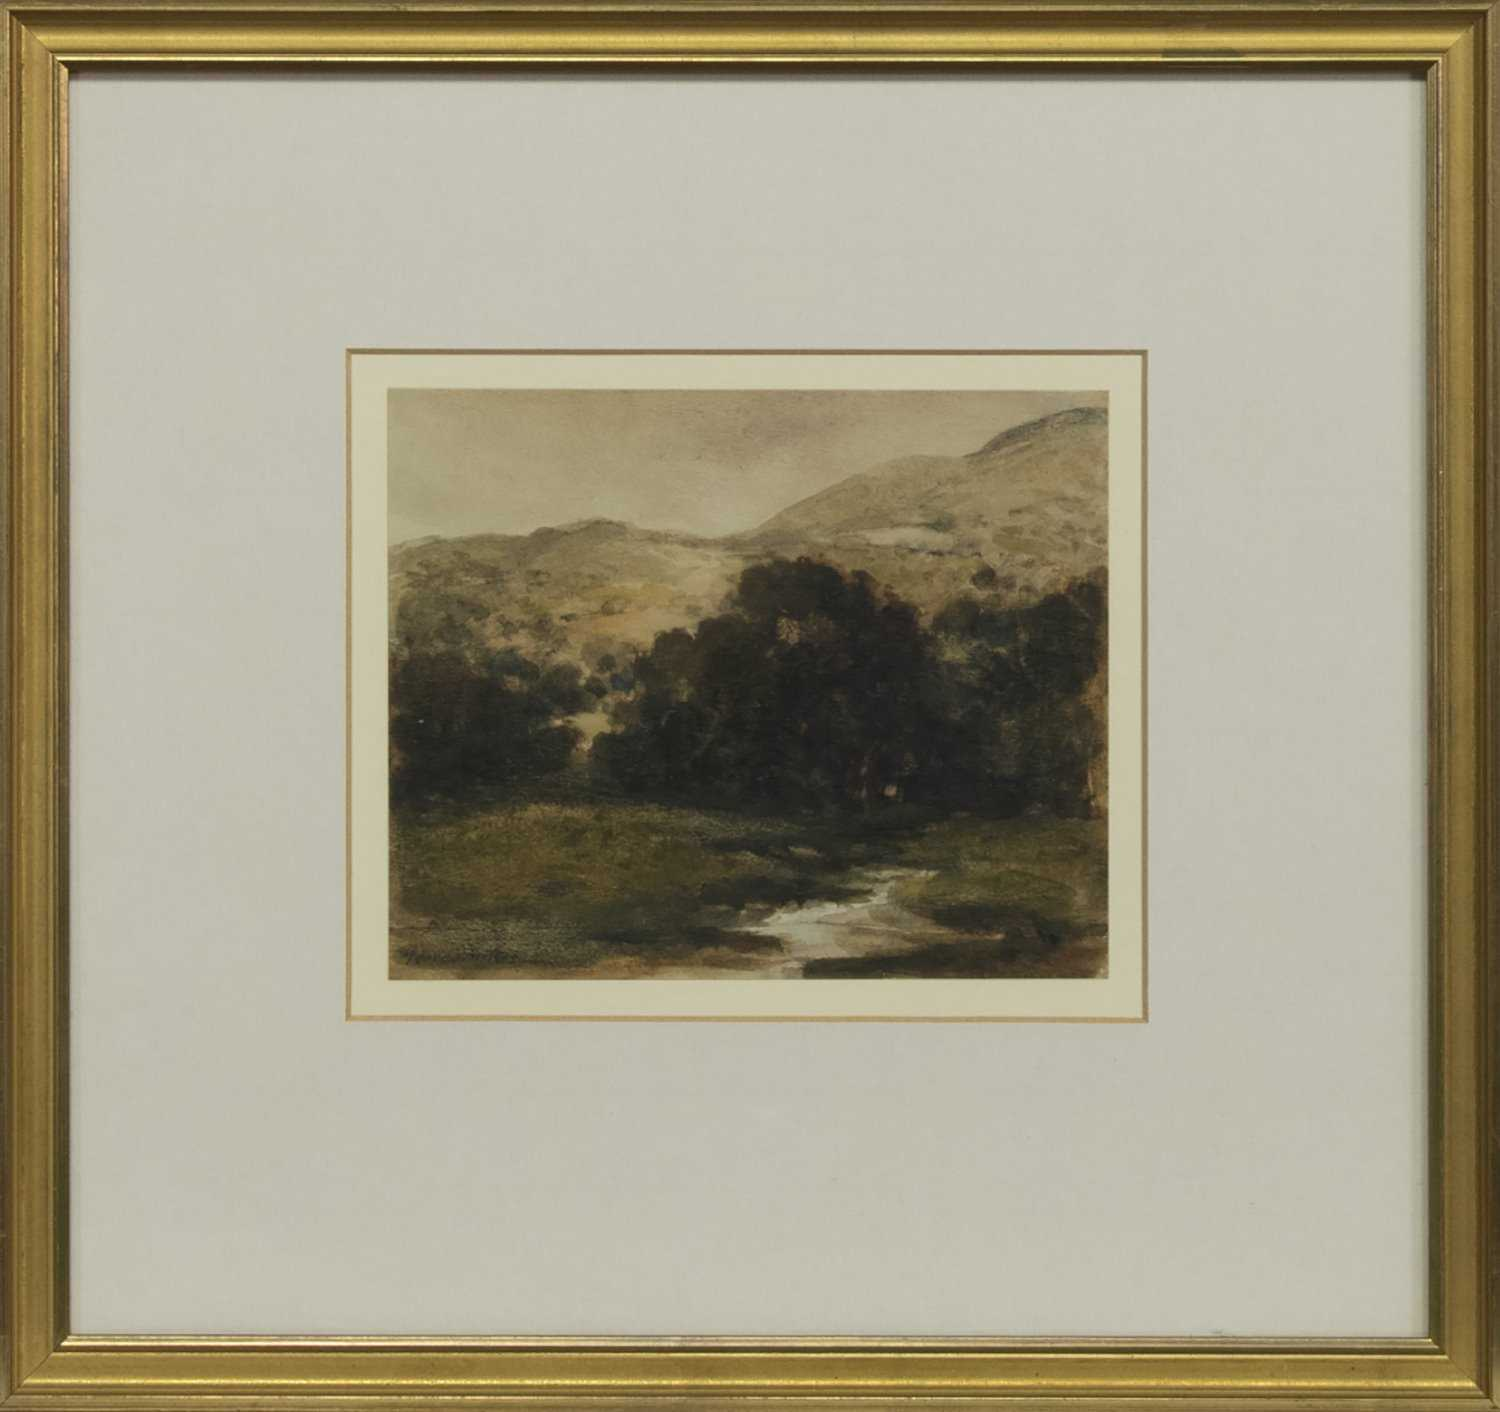 Lot 3 - RIVER AND HILLS, A WATERCOLOUR BY GEORGE SYKES